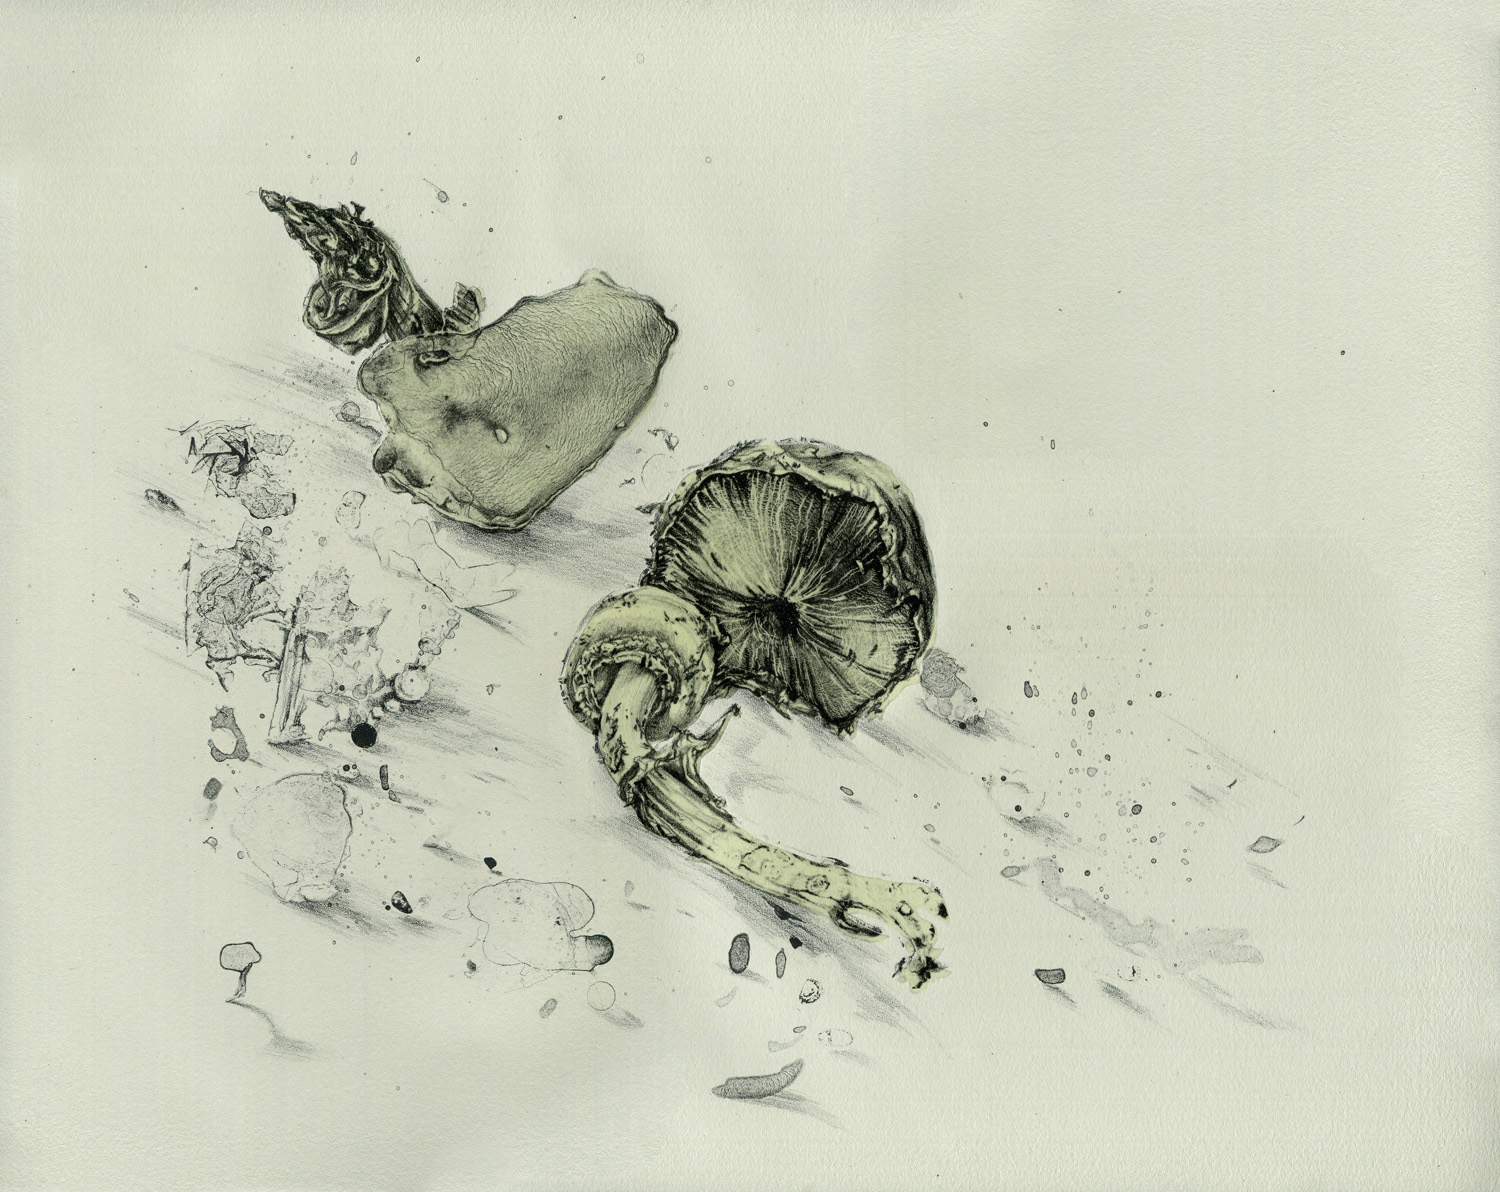 Annika Romeyn, Mushrooms, lithograph with chin colle, 34.5cm x 43cm, unique state, 2014